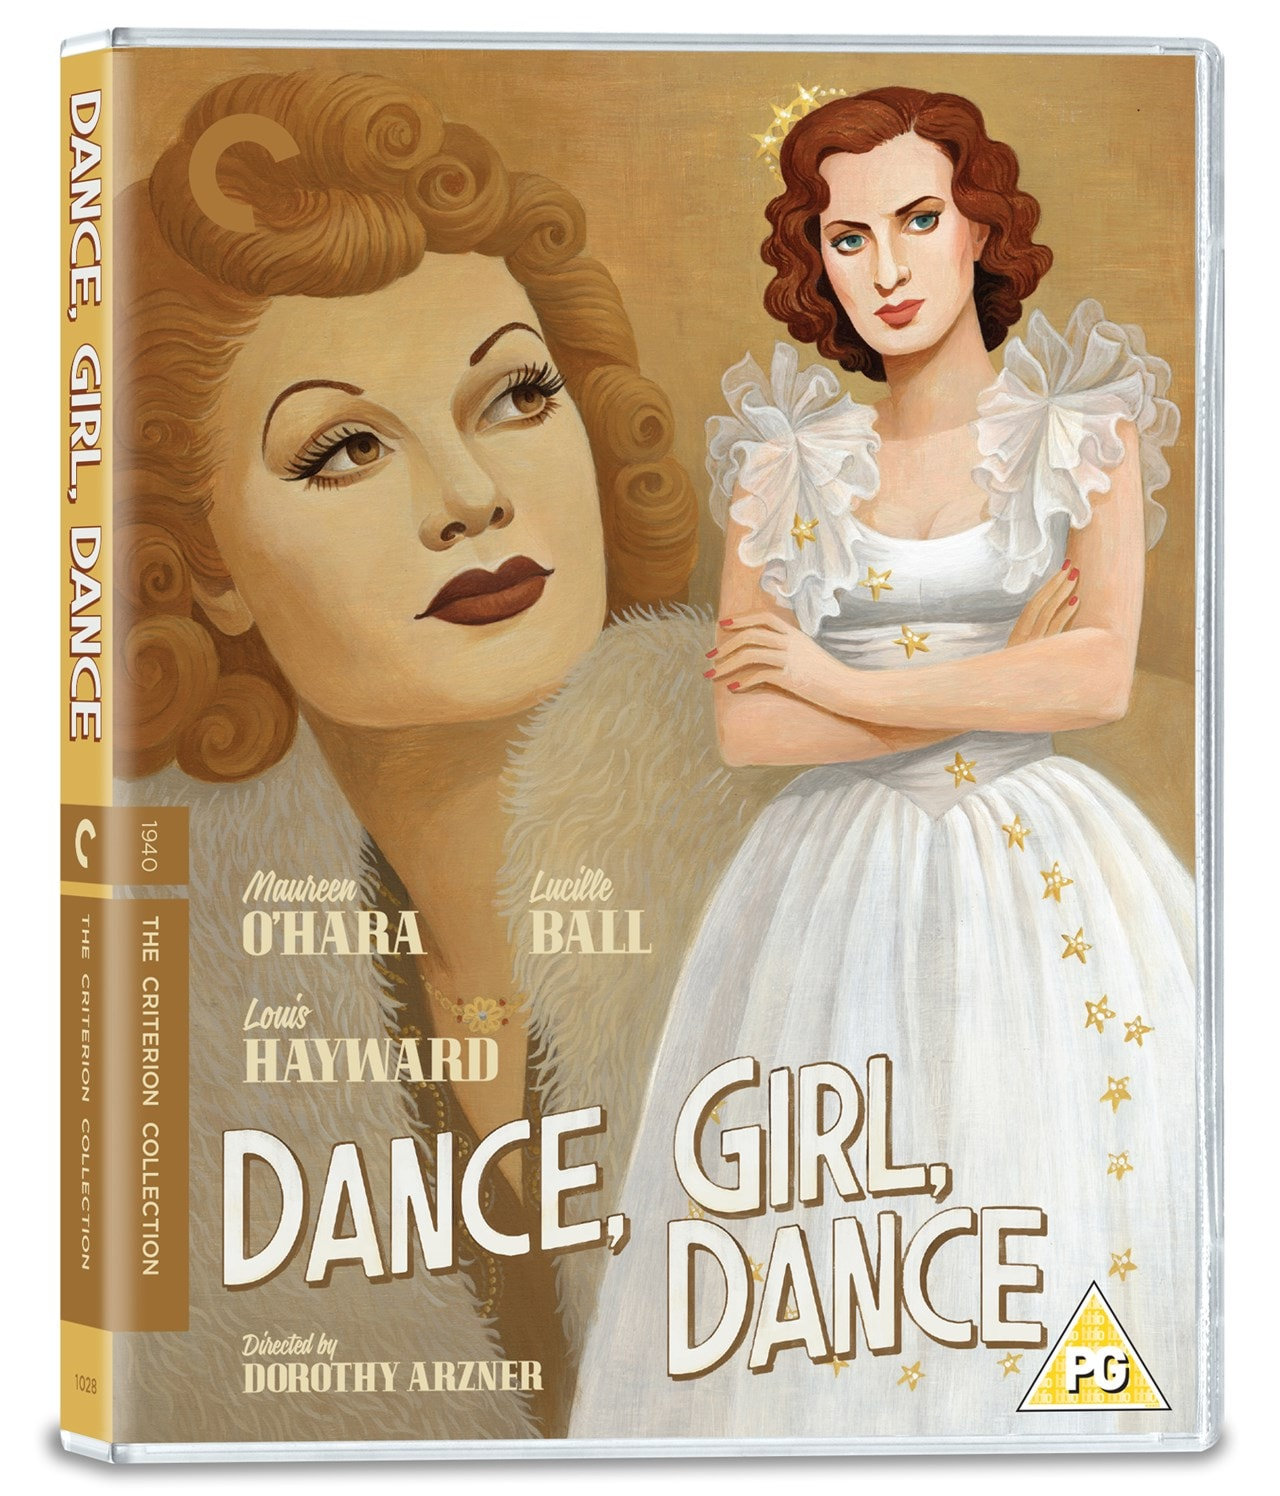 Dance, Girl, Dance - The Criterion Collection - 2